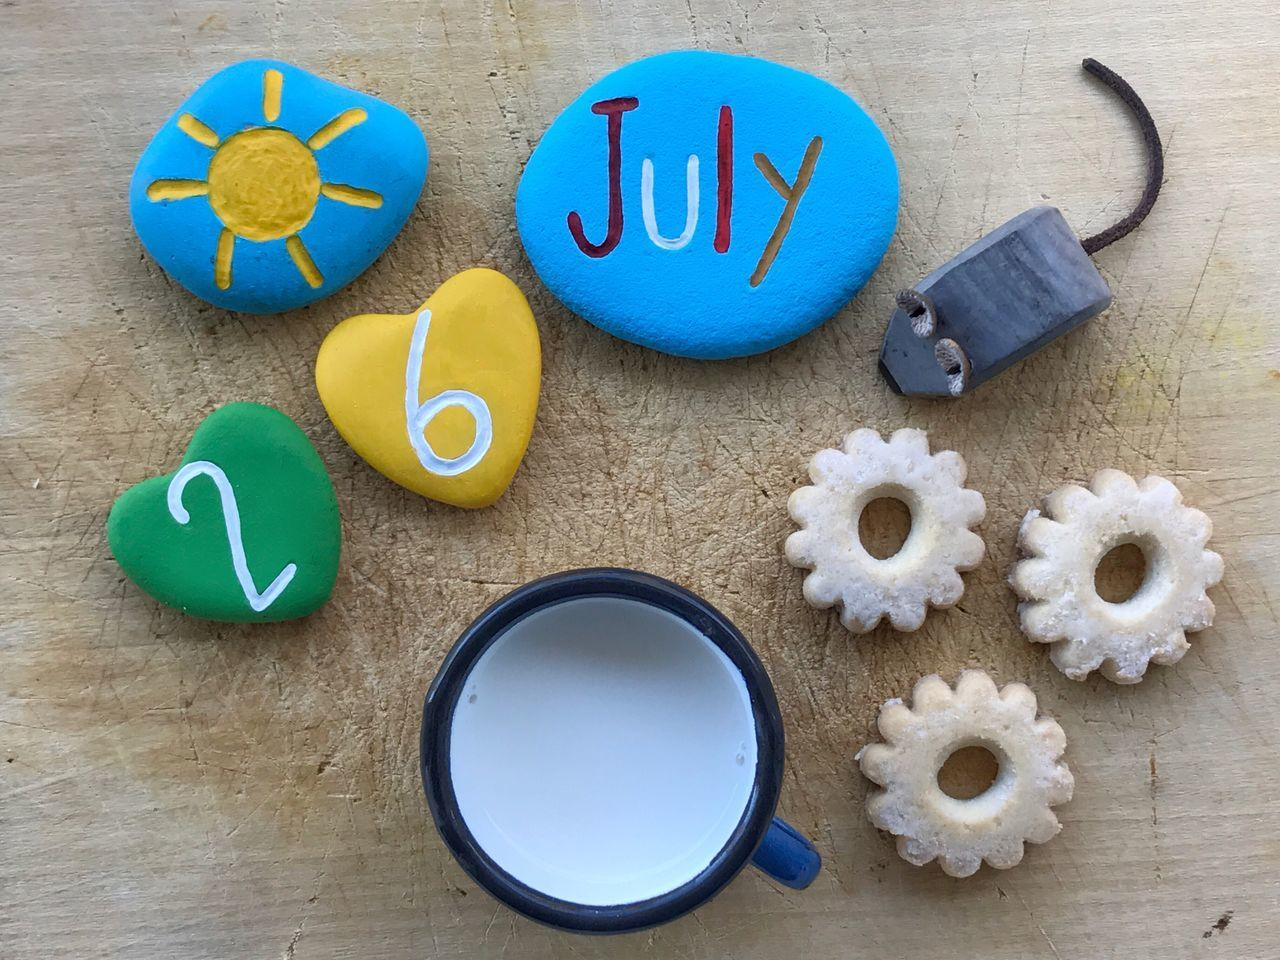 26 July with colored stones for breakfast 26July July26 Calendar Date Art Work Mouse Stones Breakfast Date July